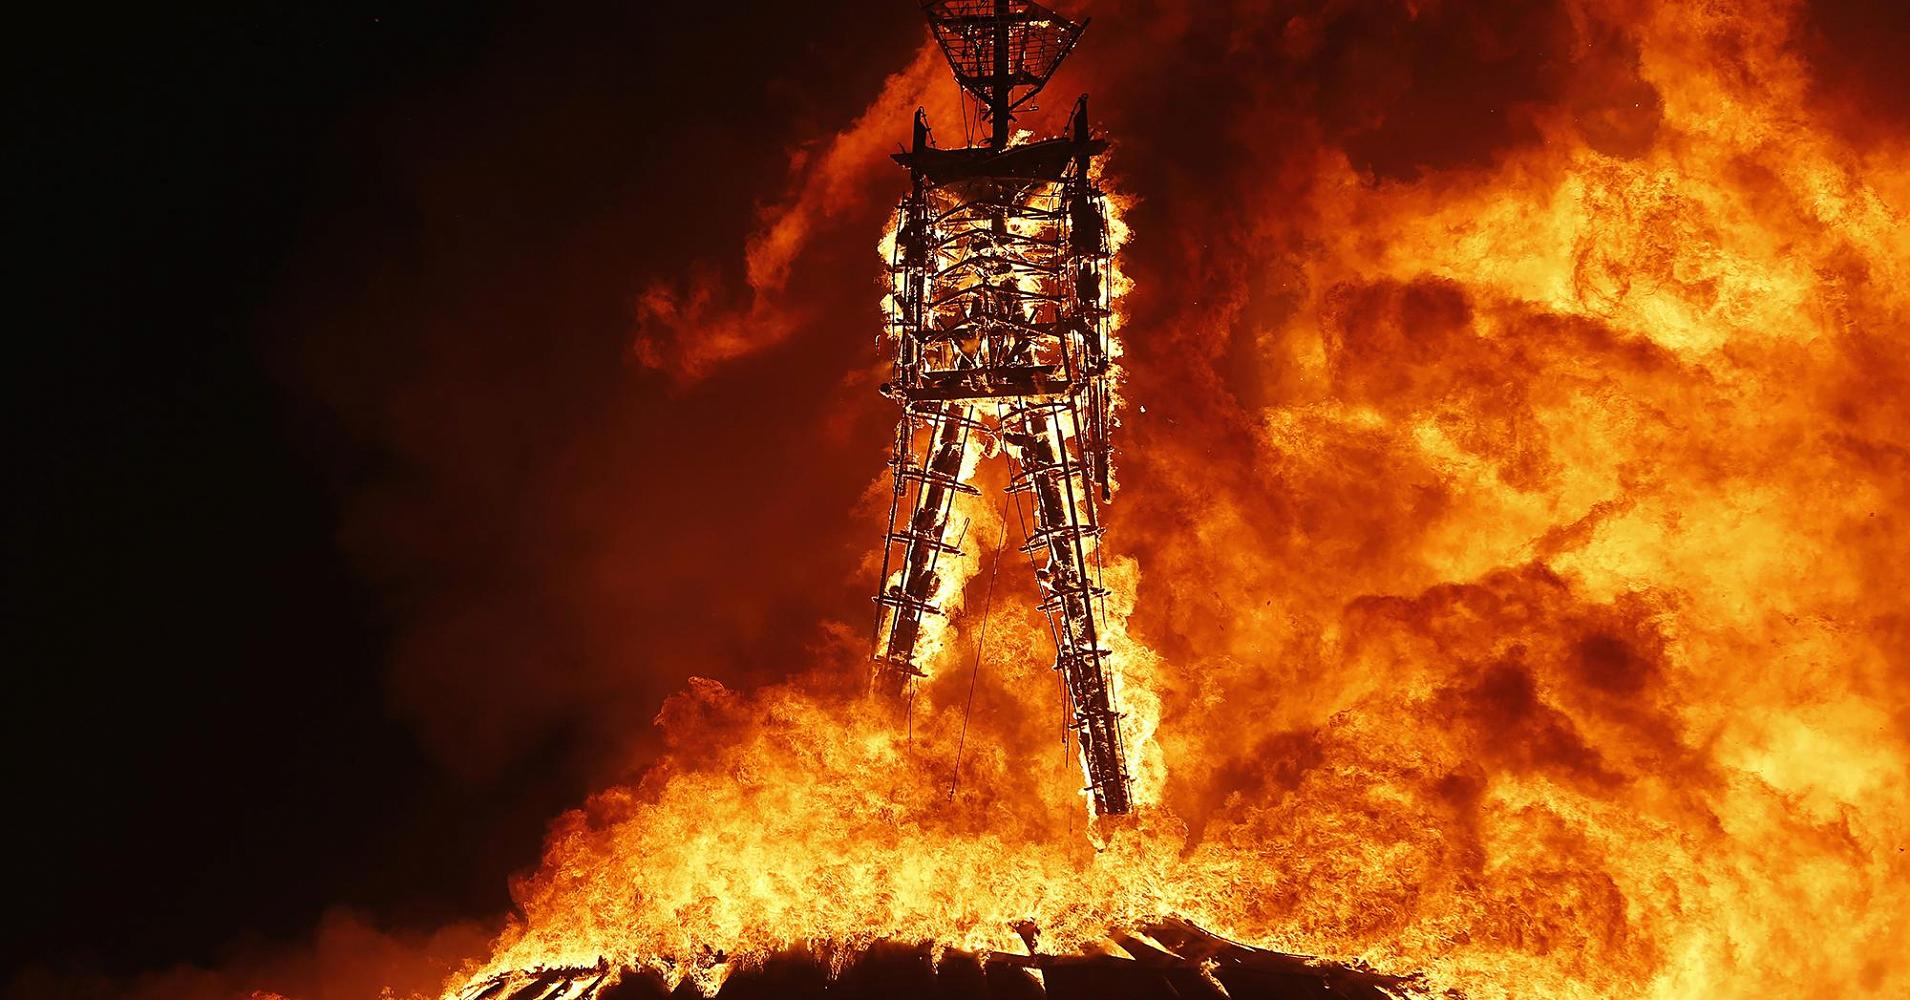 Weep For The Culture Burning Man Sells All 26000 Tickets In A Half Hour